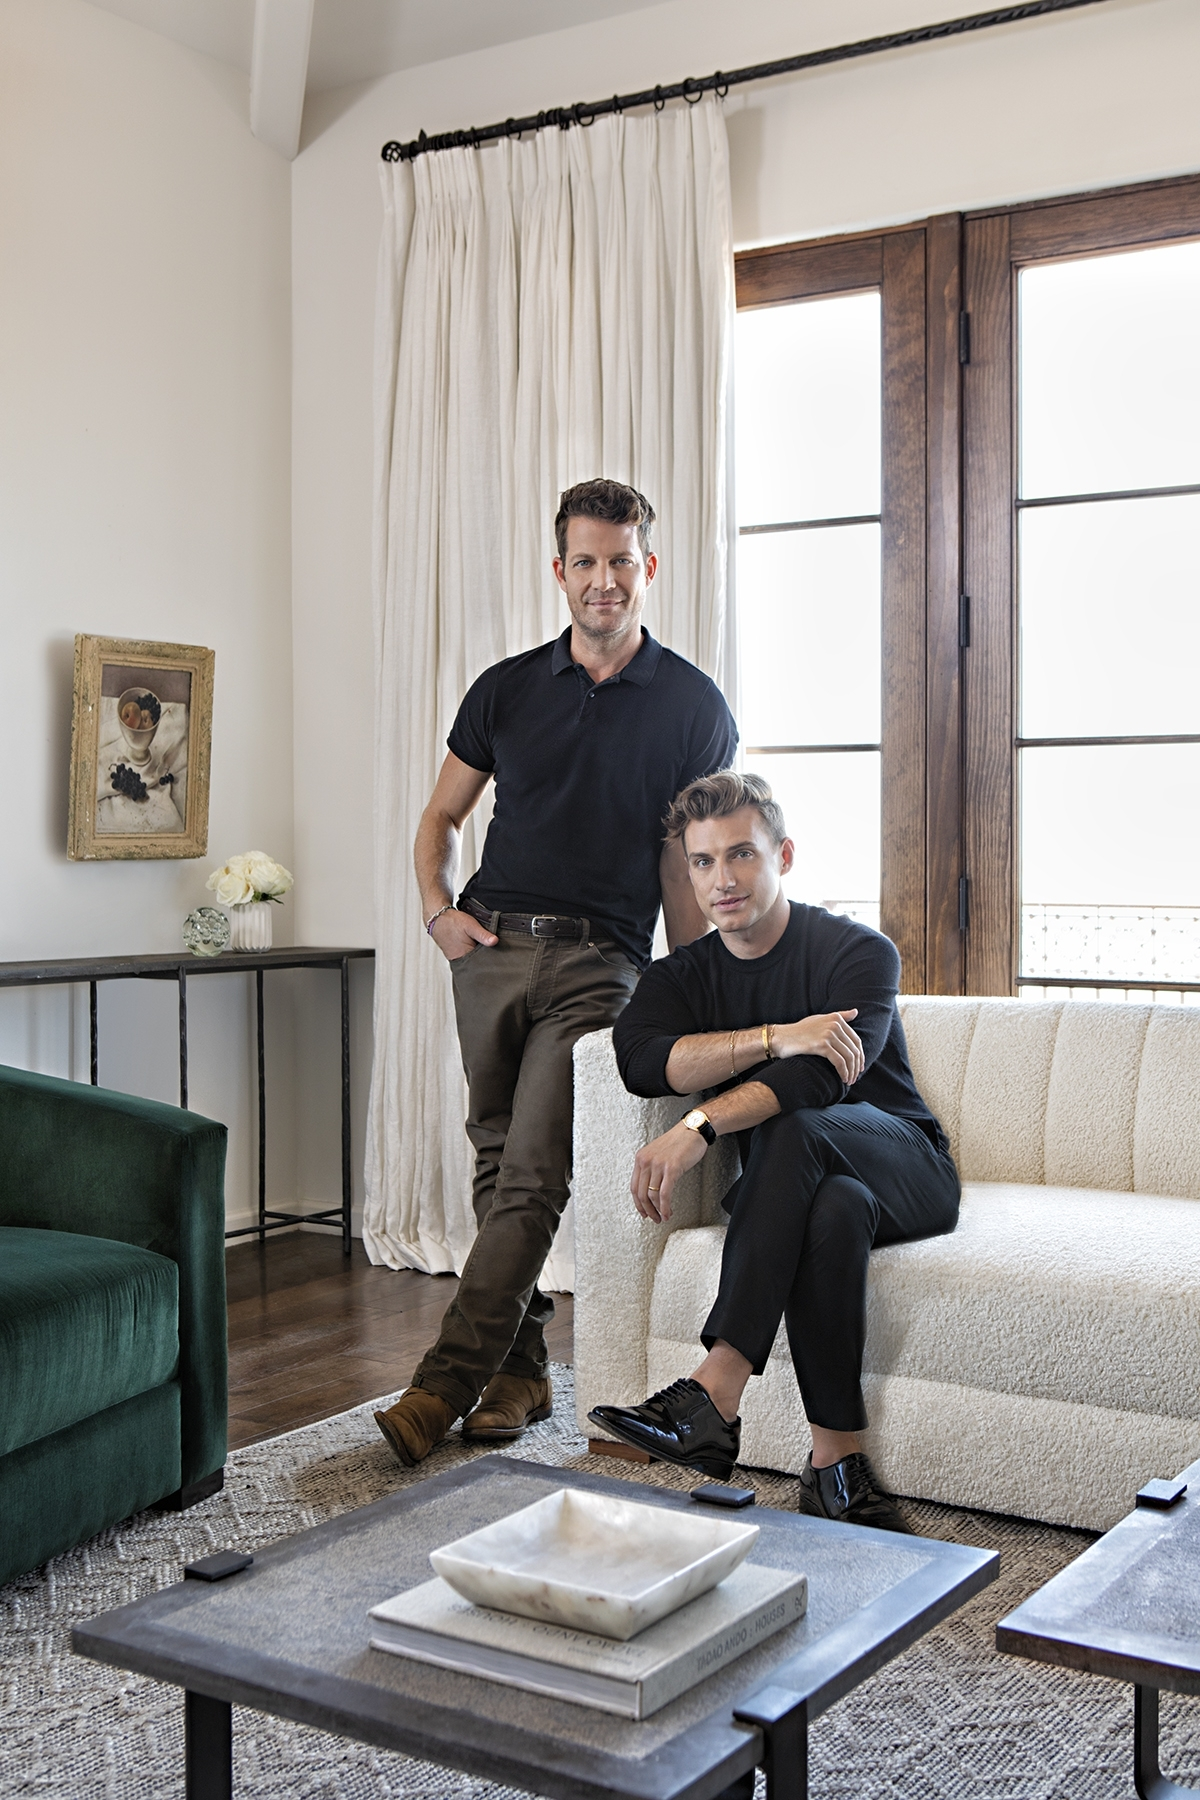 Nate Berkus & Jeremiah Brent's Newest Affordable Collection | Rue Pertaining To Soane 3 Piece Sectionals By Nate Berkus And Jeremiah Brent (Image 6 of 25)